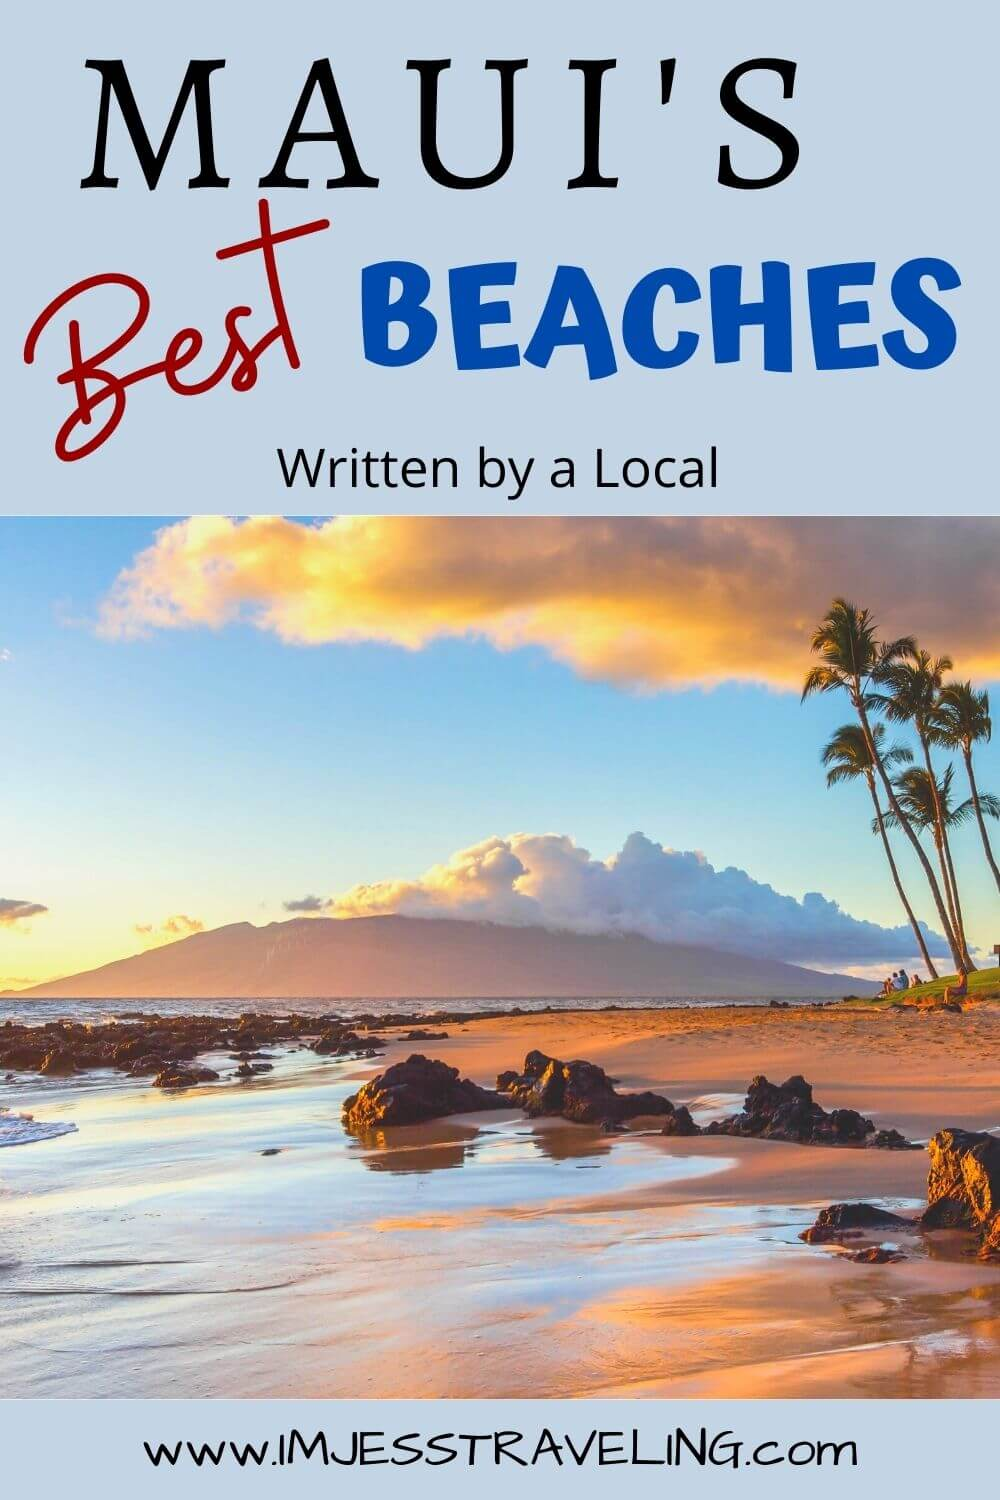 The Best Beaches in Maui: Written by a Local